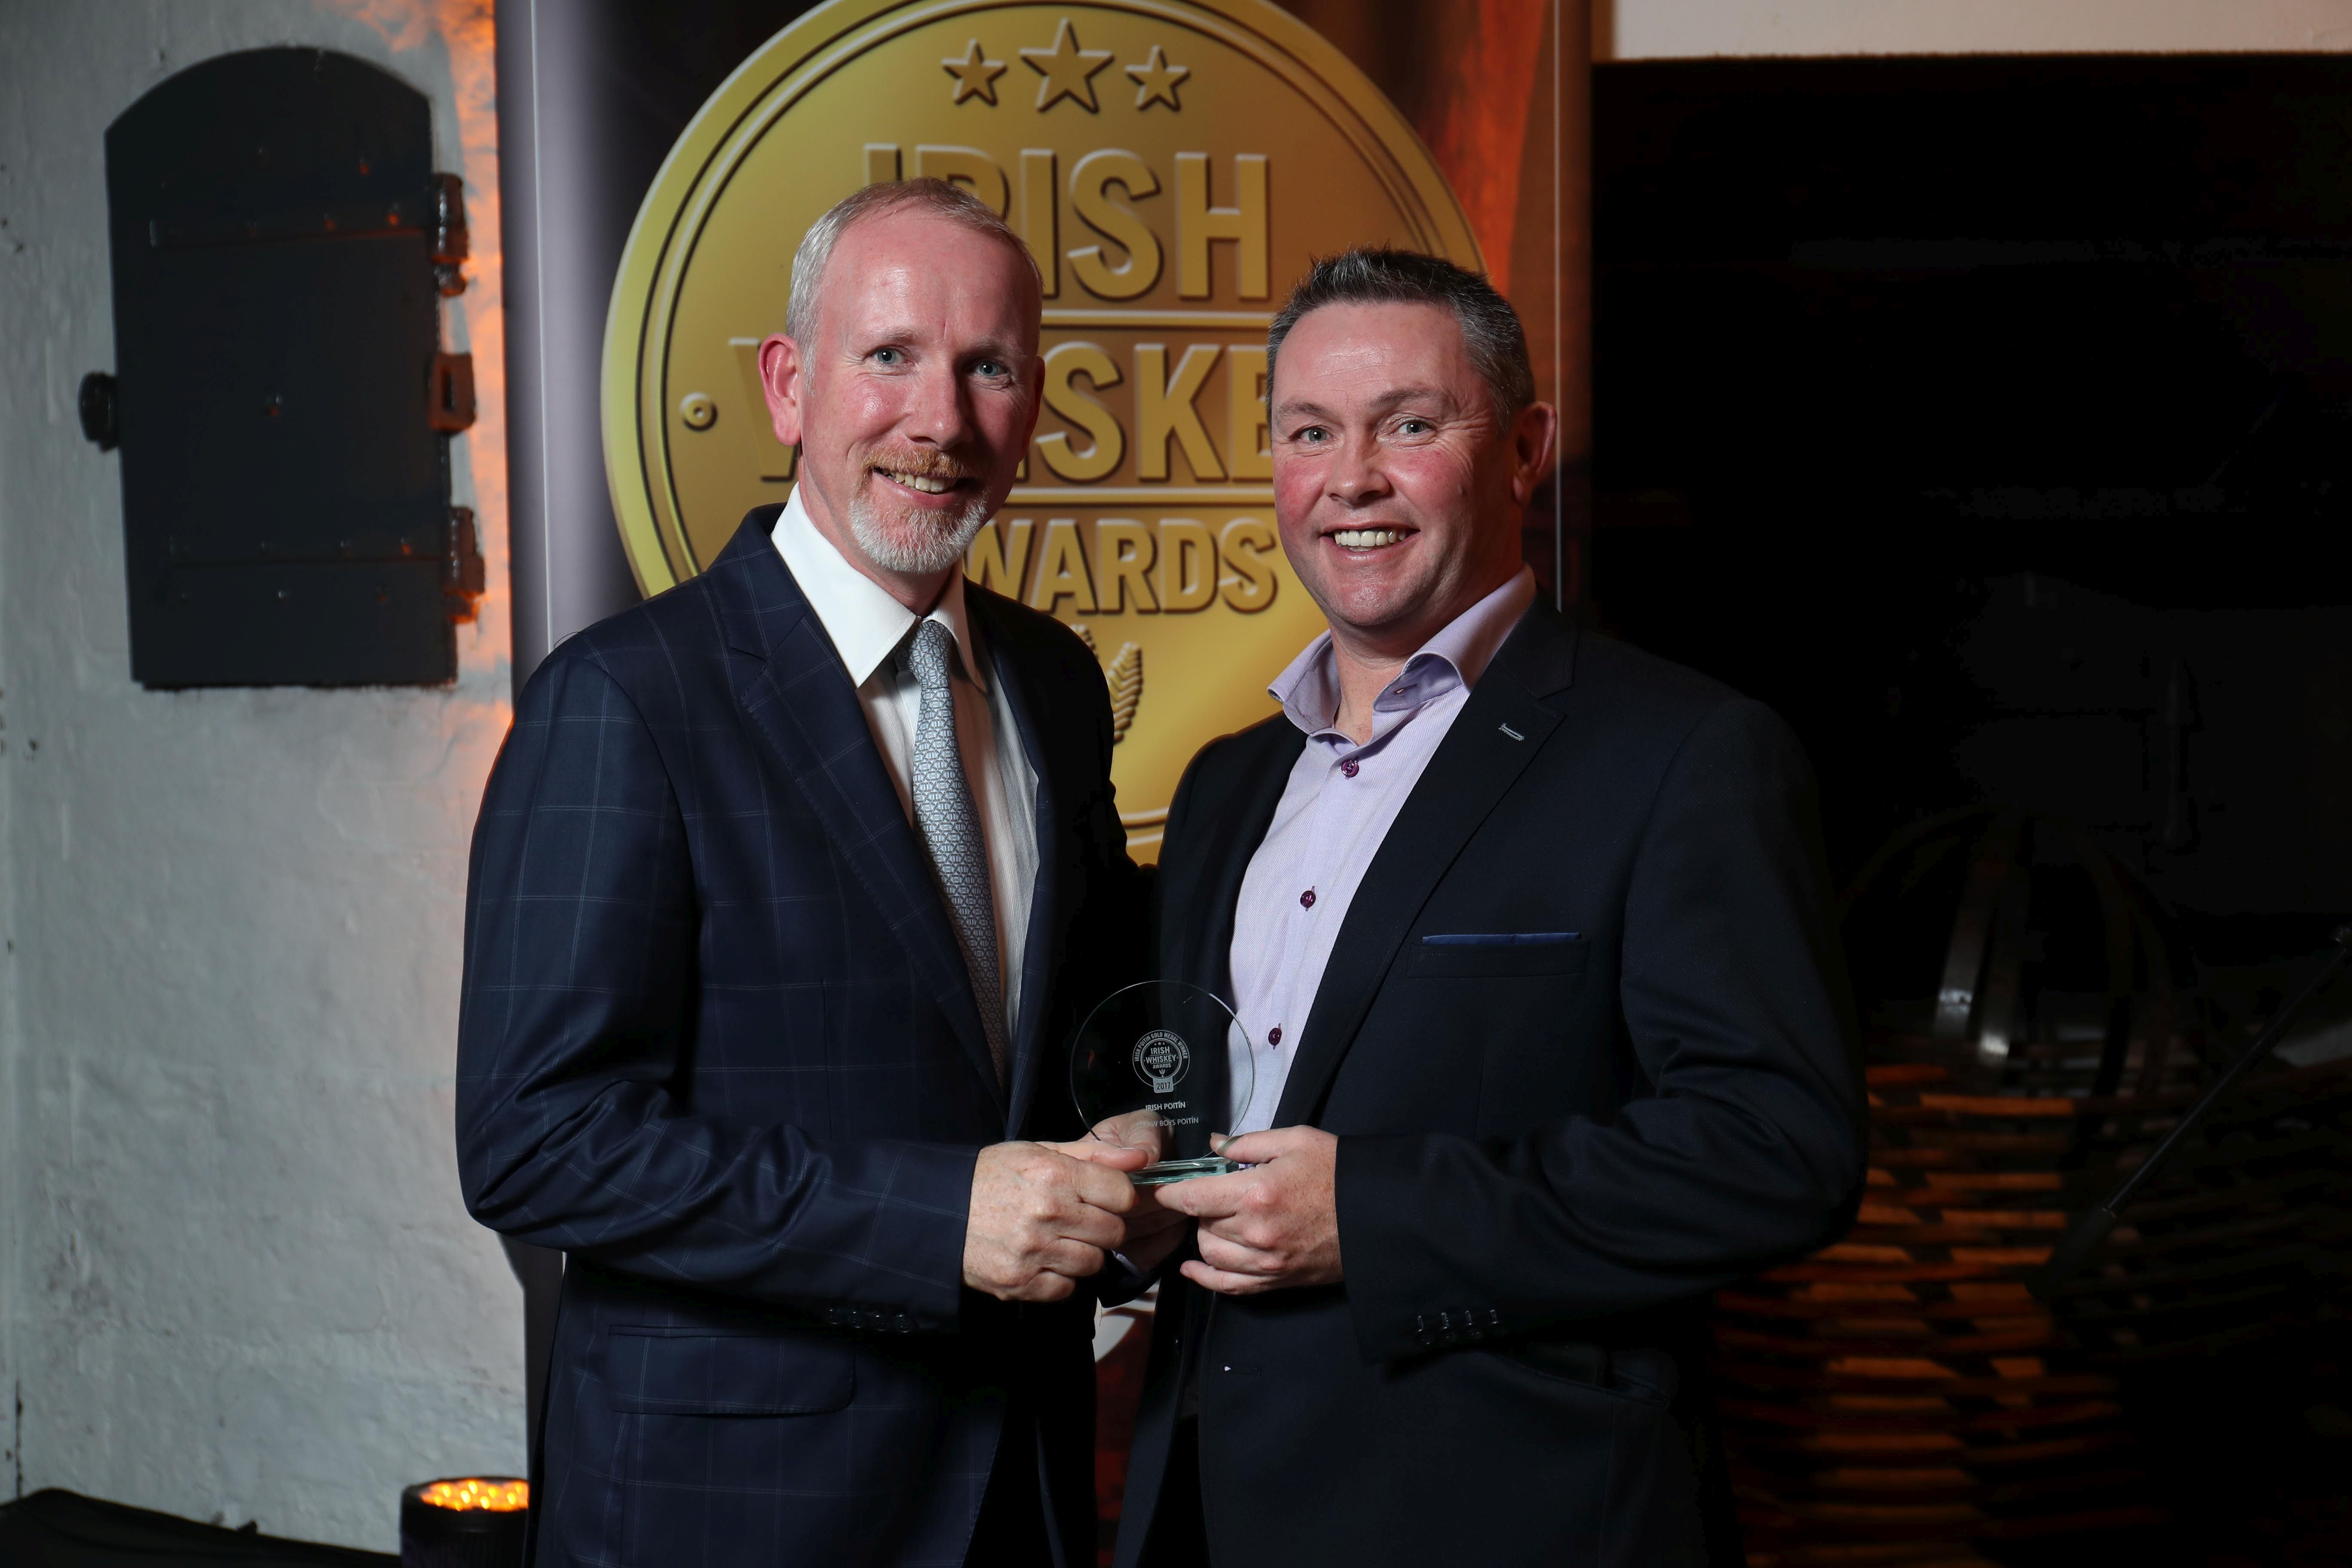 Gold Medal Winner of Best Irish Poitin